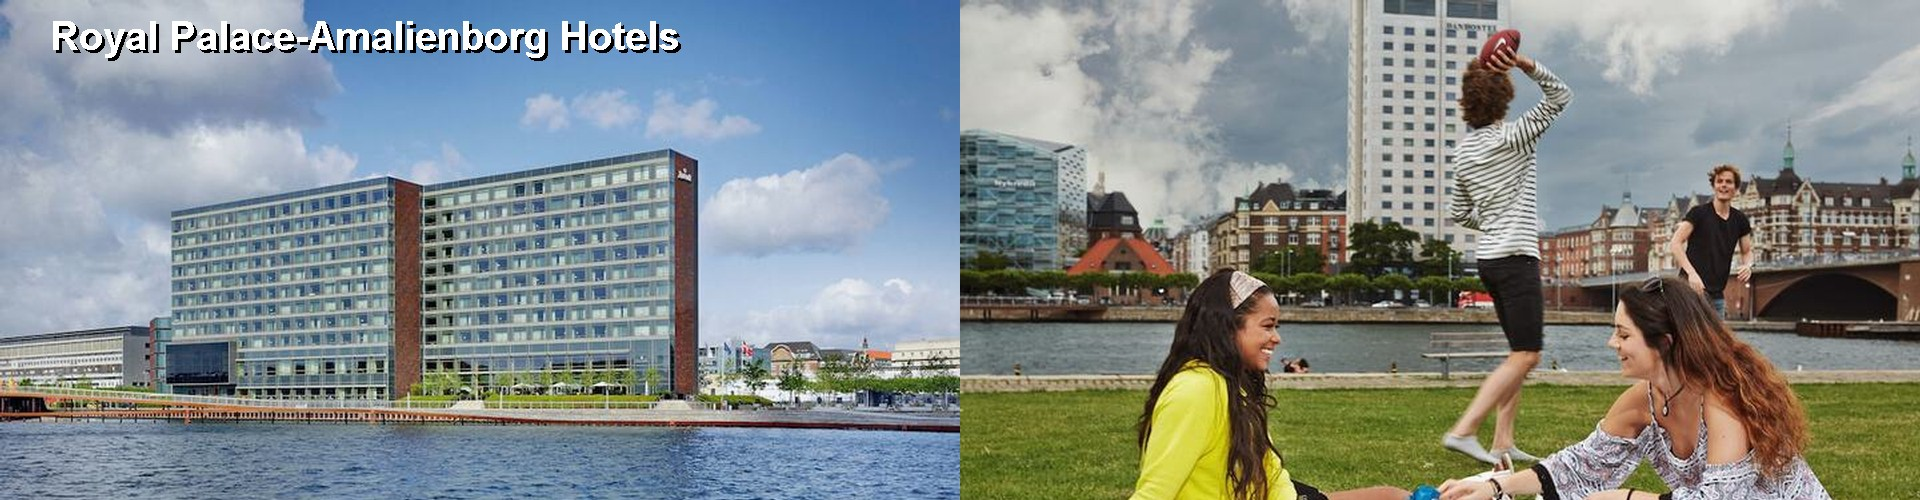 5 Best Hotels near Royal Palace-Amalienborg